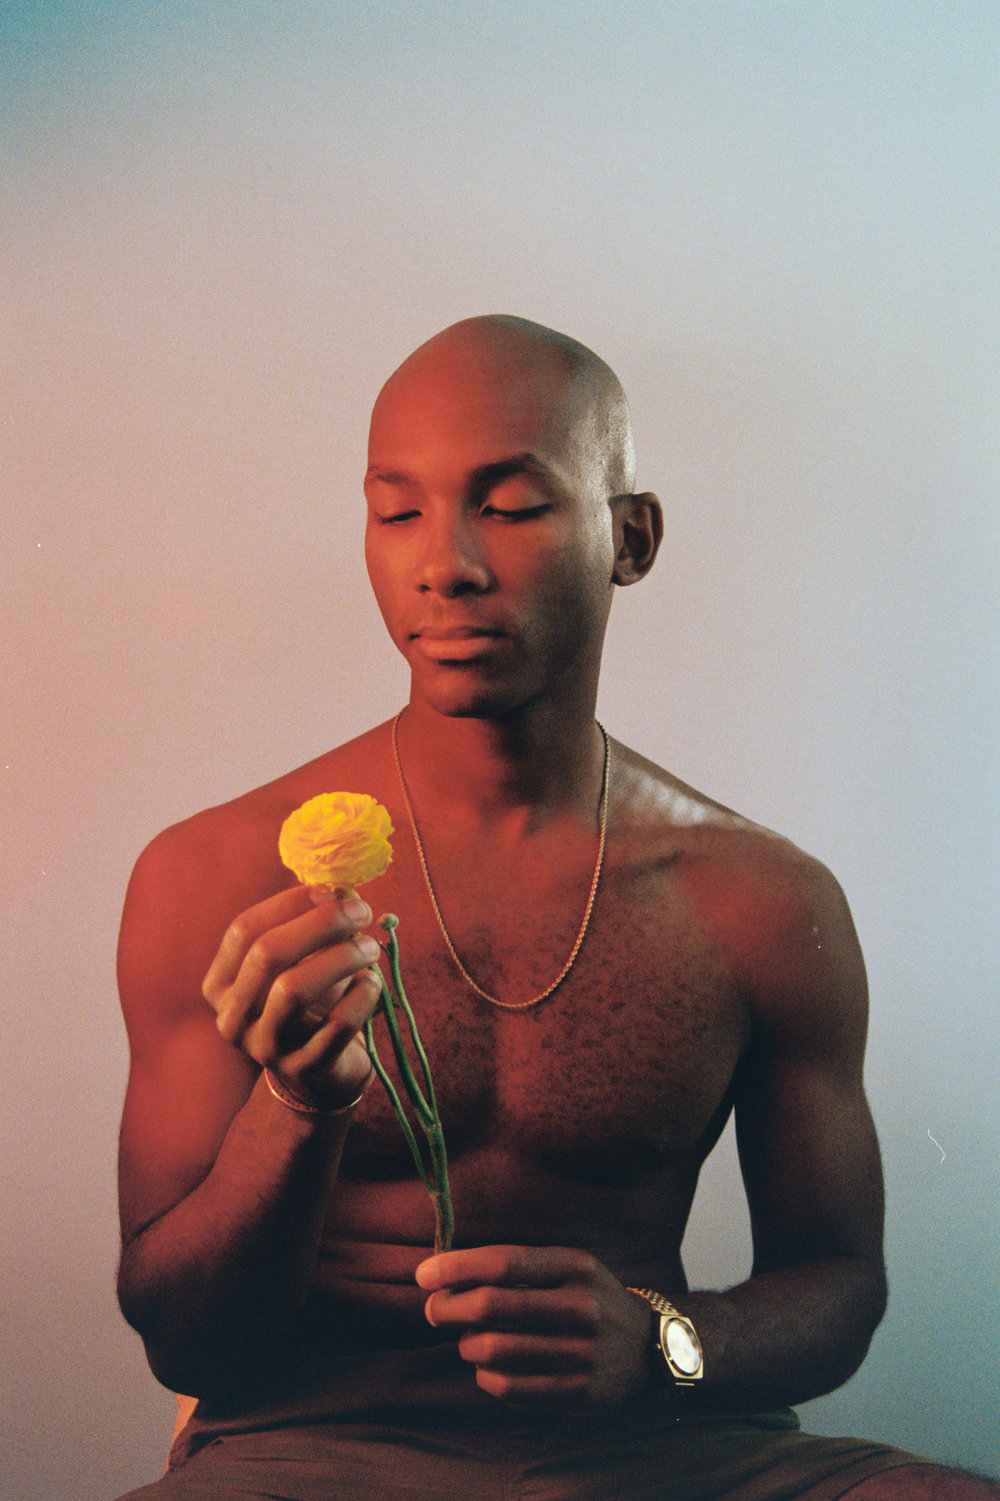 Nick Thomas / Creative